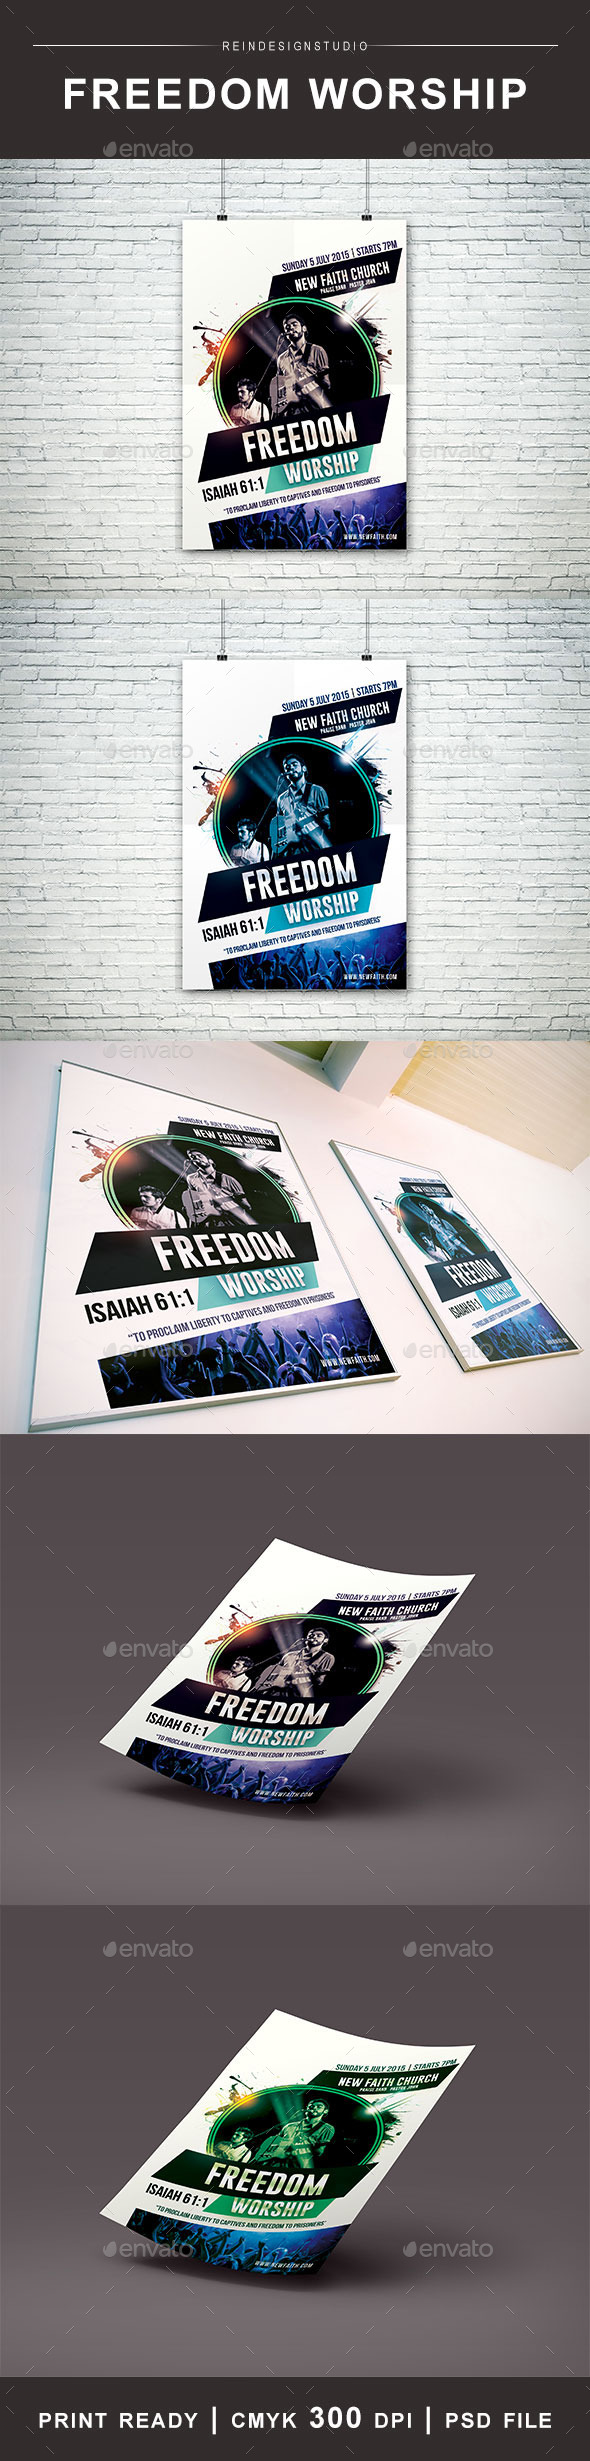 GraphicRiver Freedom Worship Church Flyer 11863893